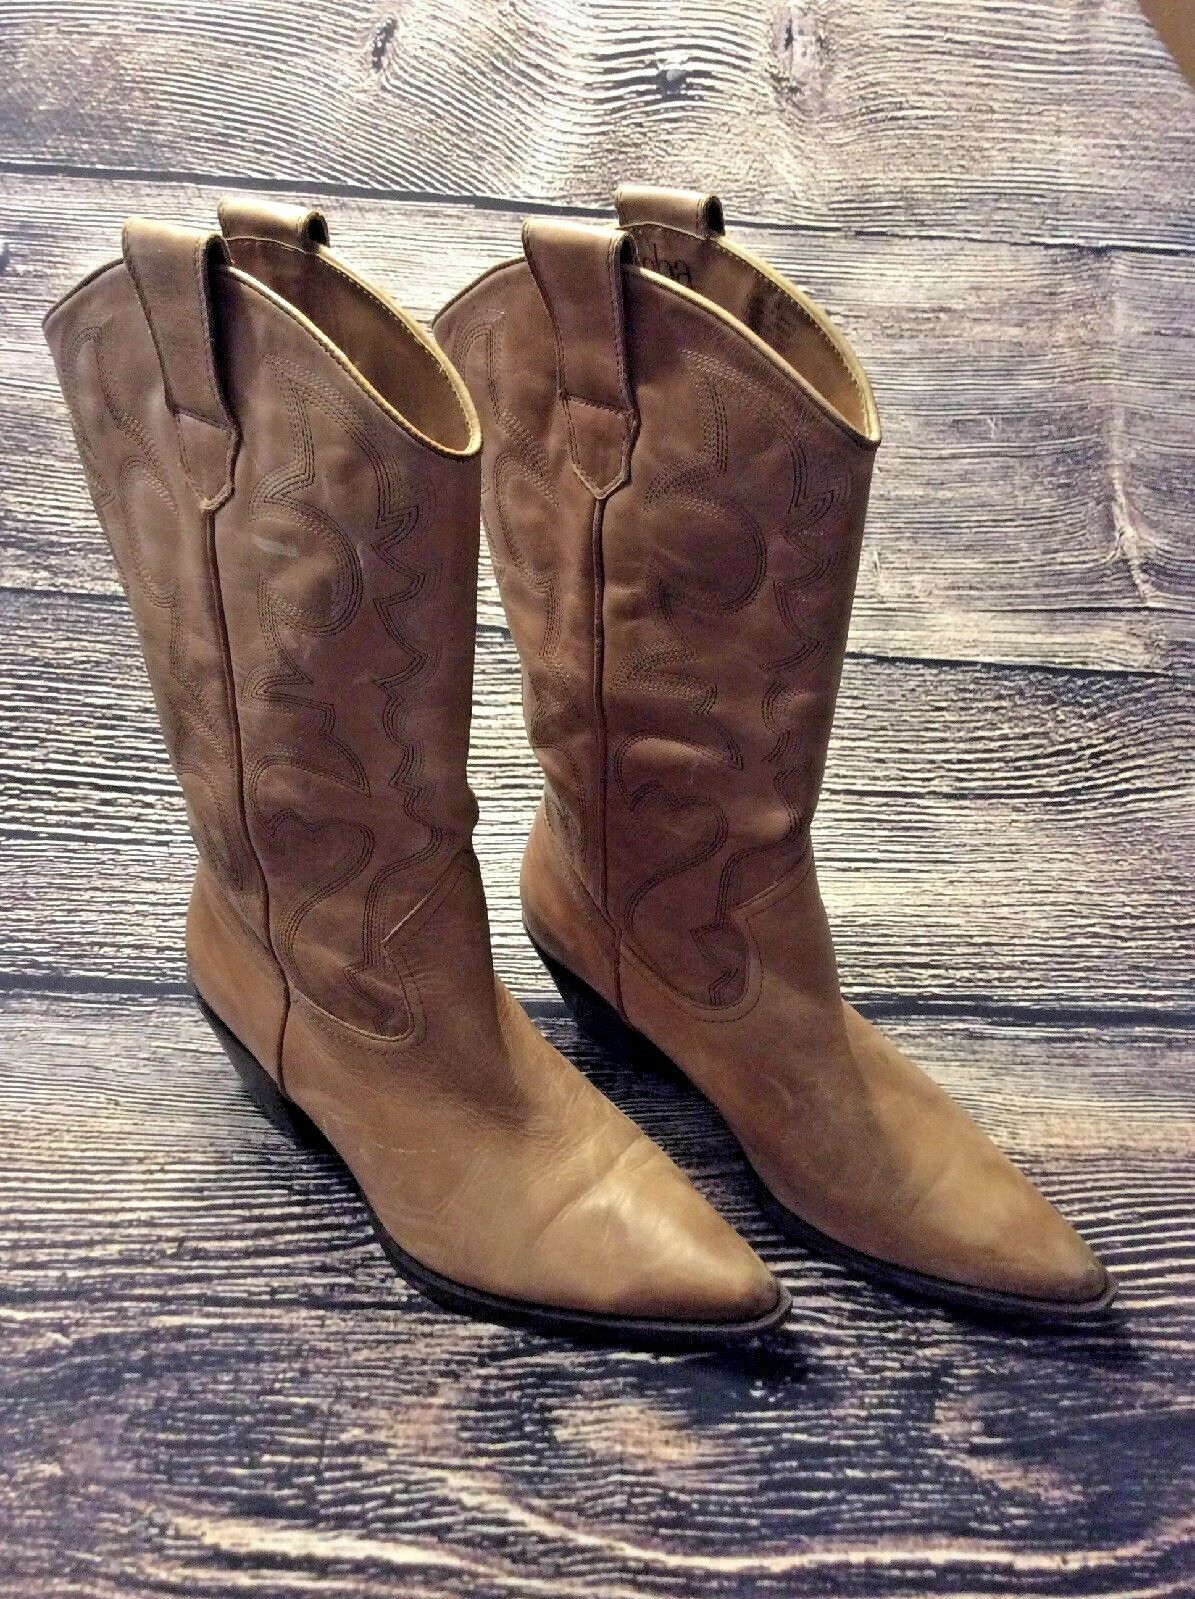 GREAT Reba Western Cowgirl Women Boots Light Brown Leather SZ 7  Mint Condition